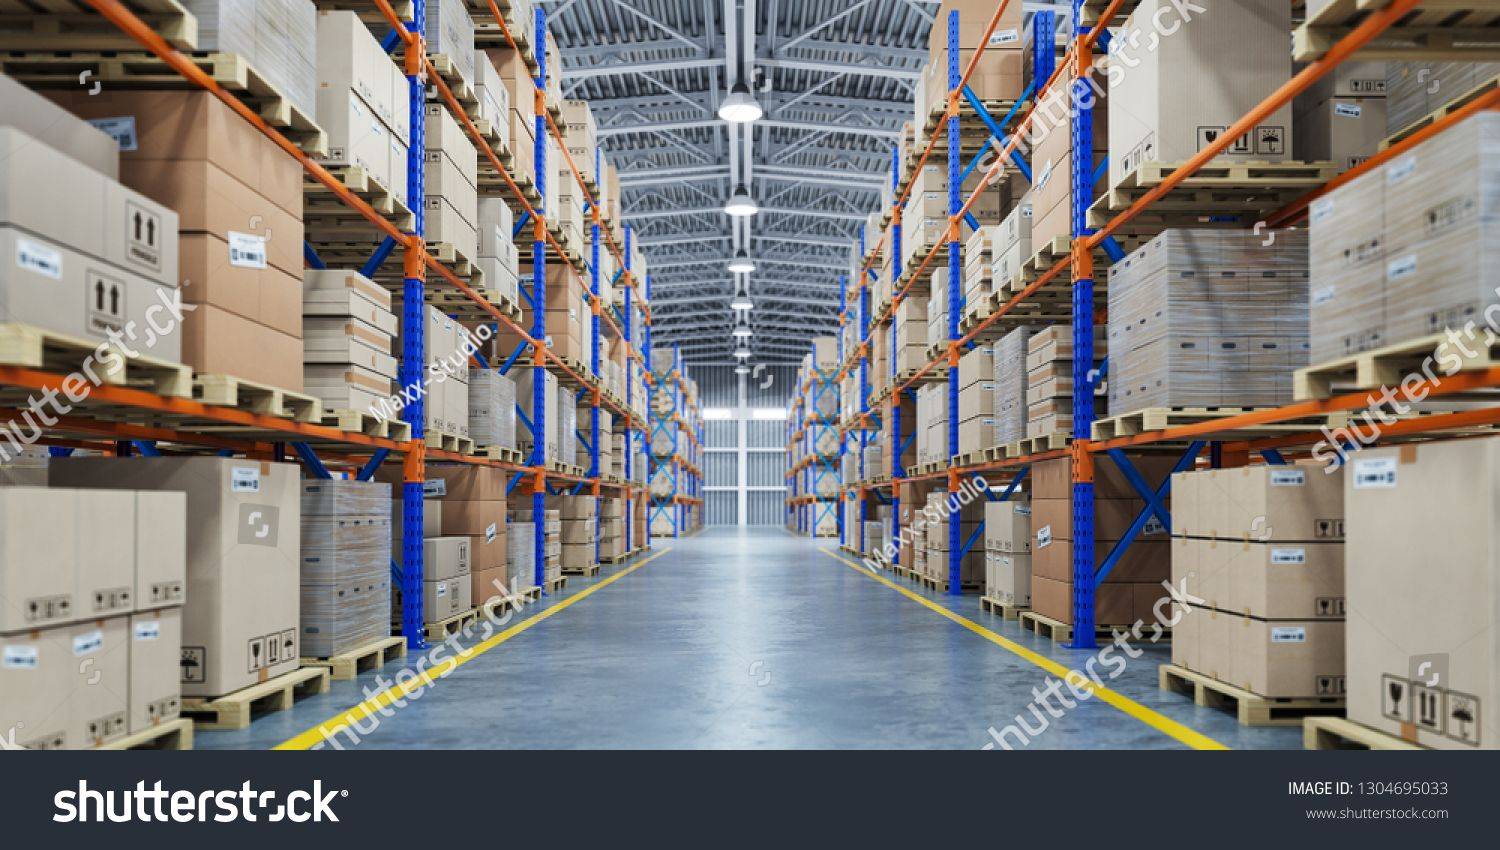 Warehouse Or Storage And Shelves With Cardboard Boxes Industrial